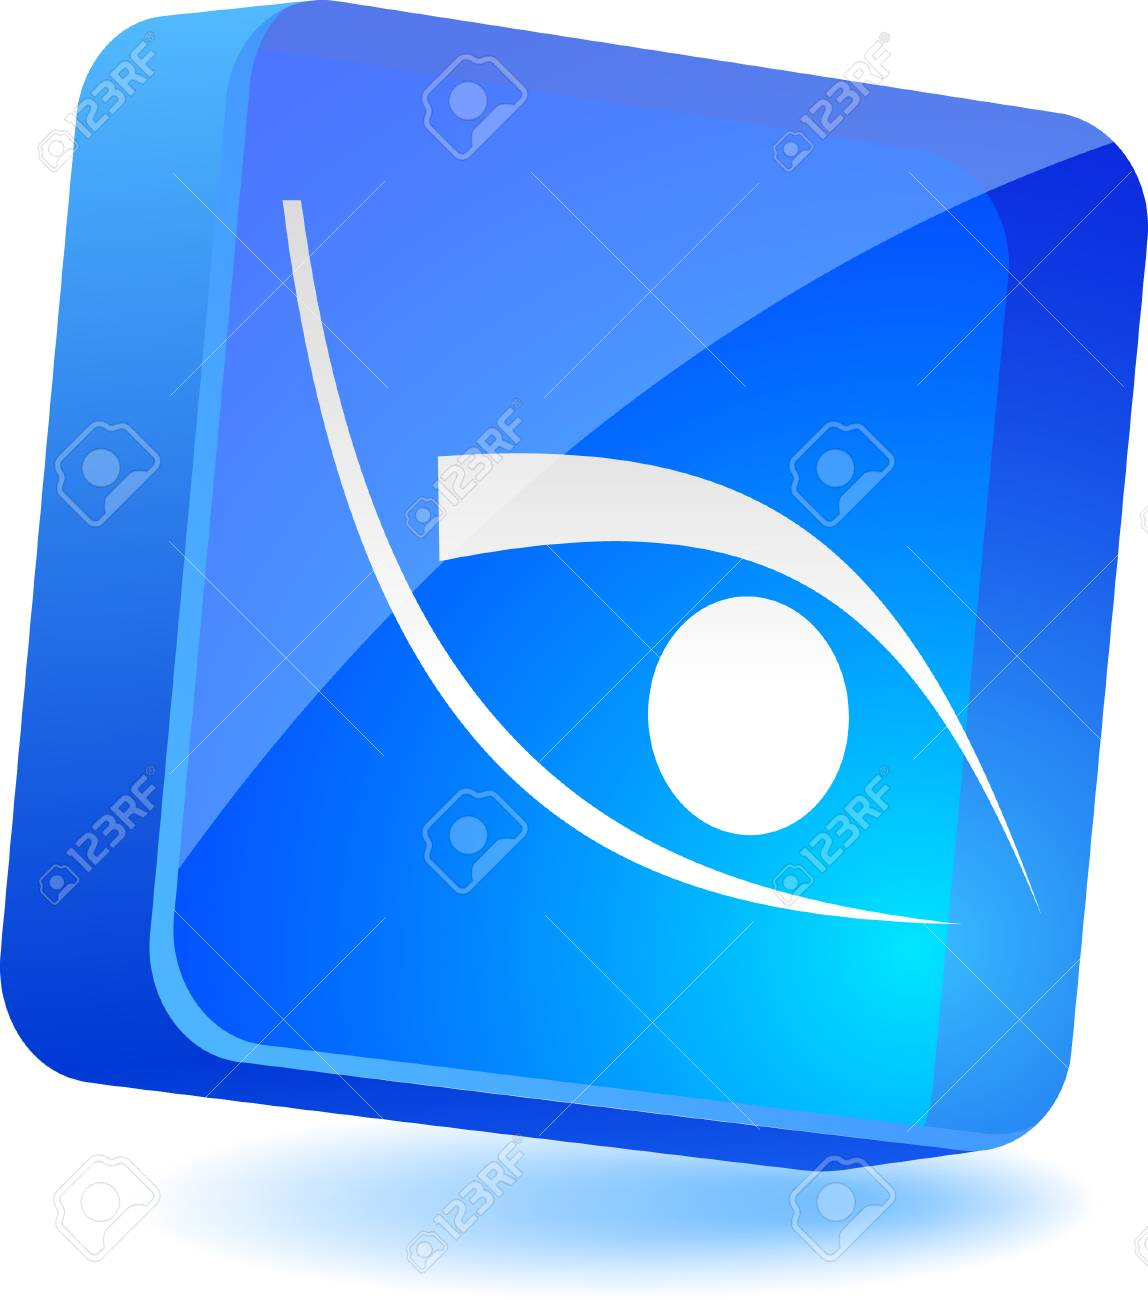 Eye 3d icon. Vector illustration. Stock Vector - 4935325